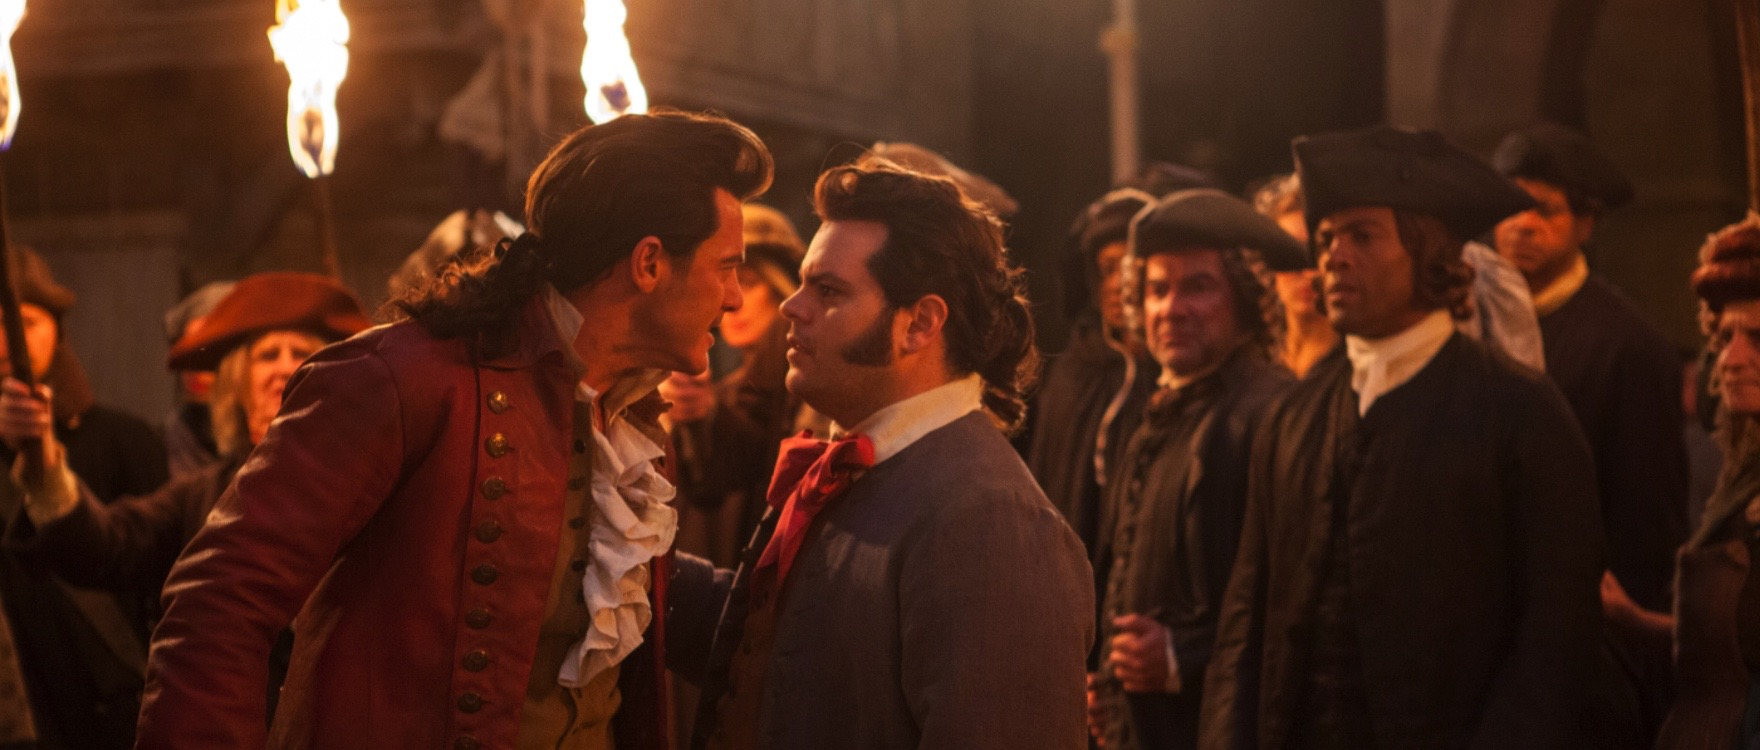 Love Each Other When Two Souls: 'Beauty And The Beast's LeFou Will Be Disney's First Gay